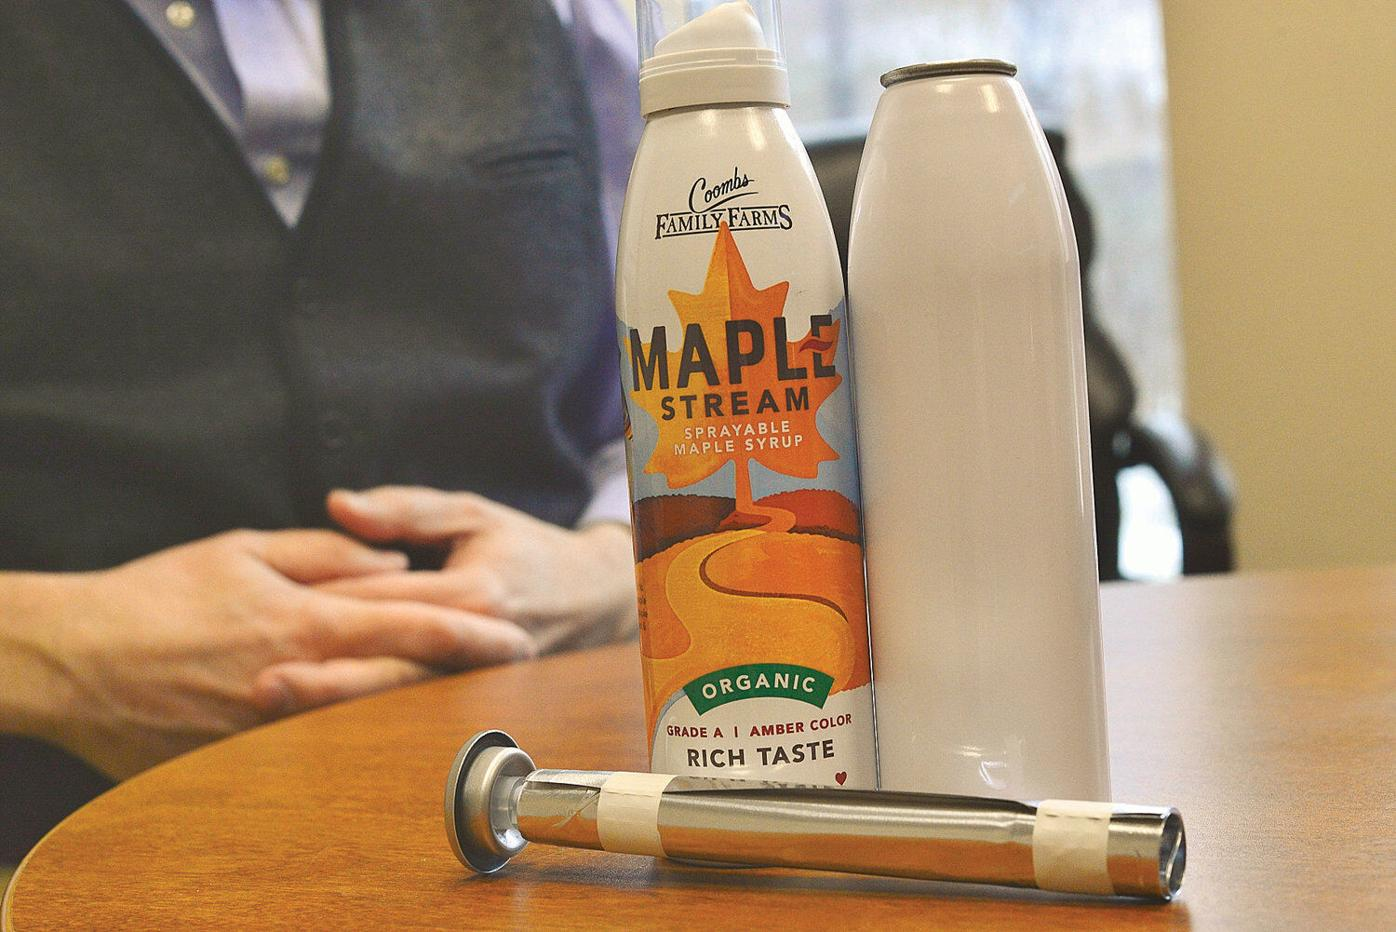 Coombs Family Farms makes a sweet maple innovation